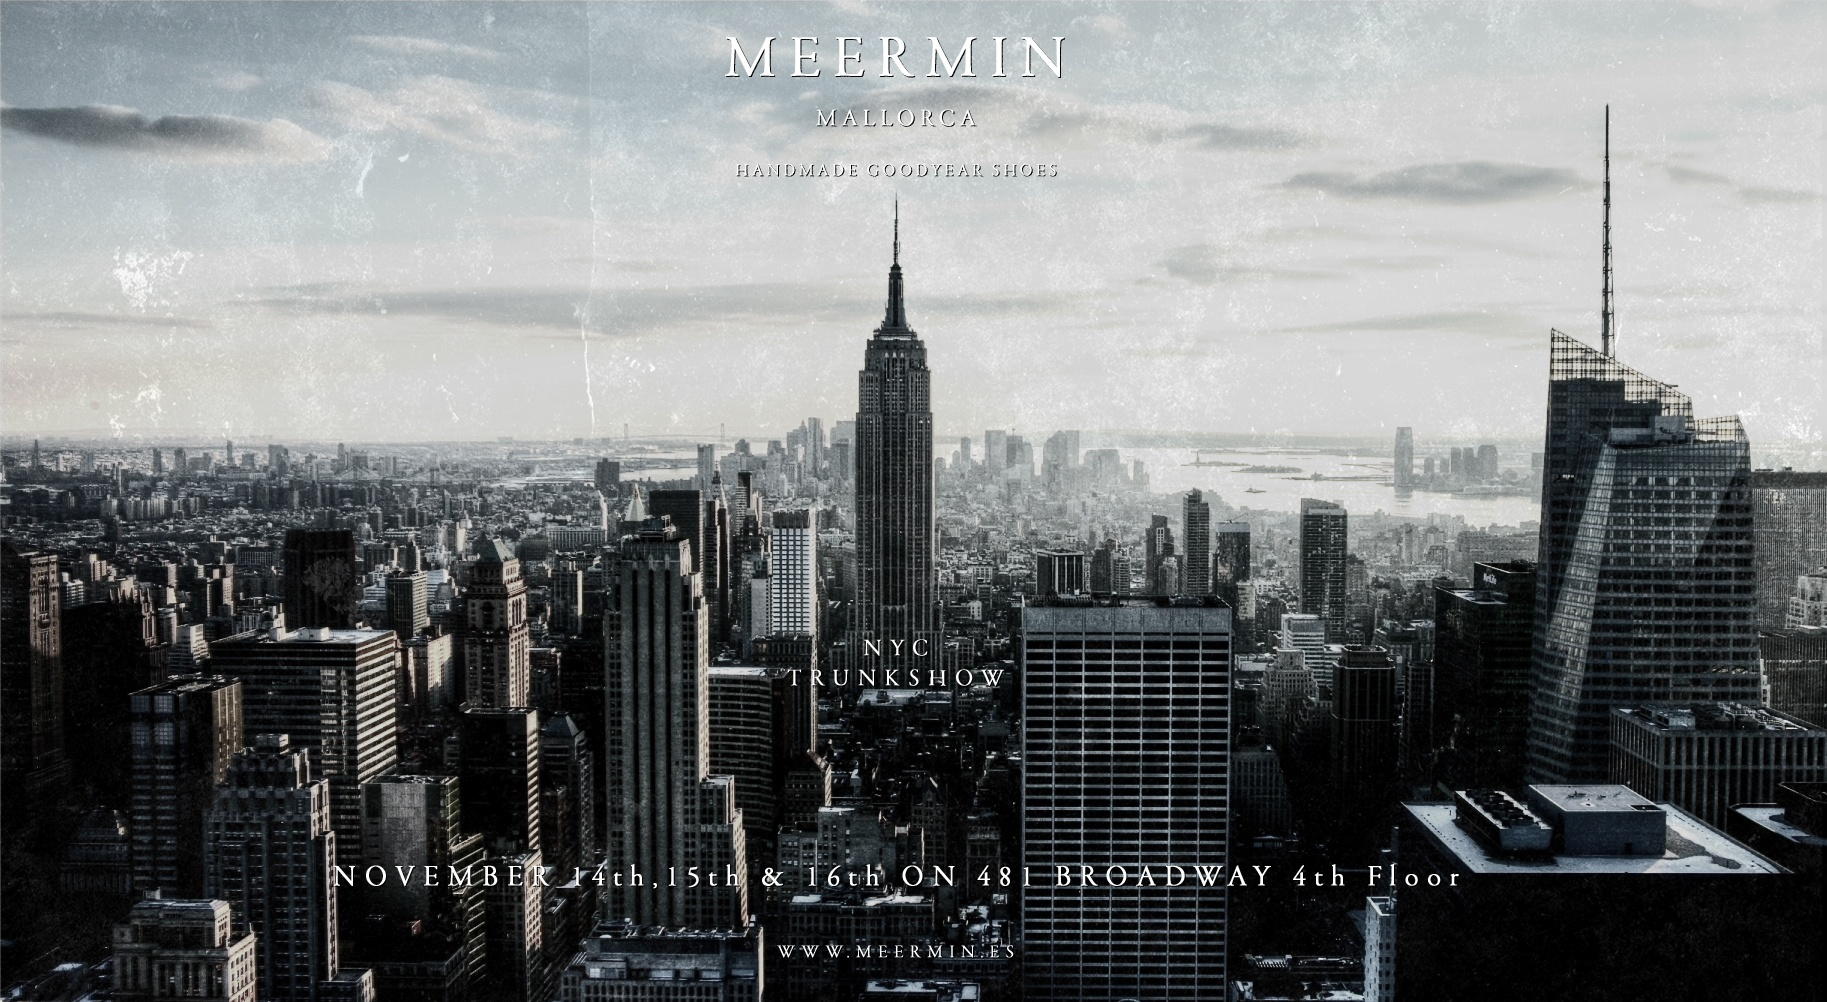 Meermin nyc trunk show